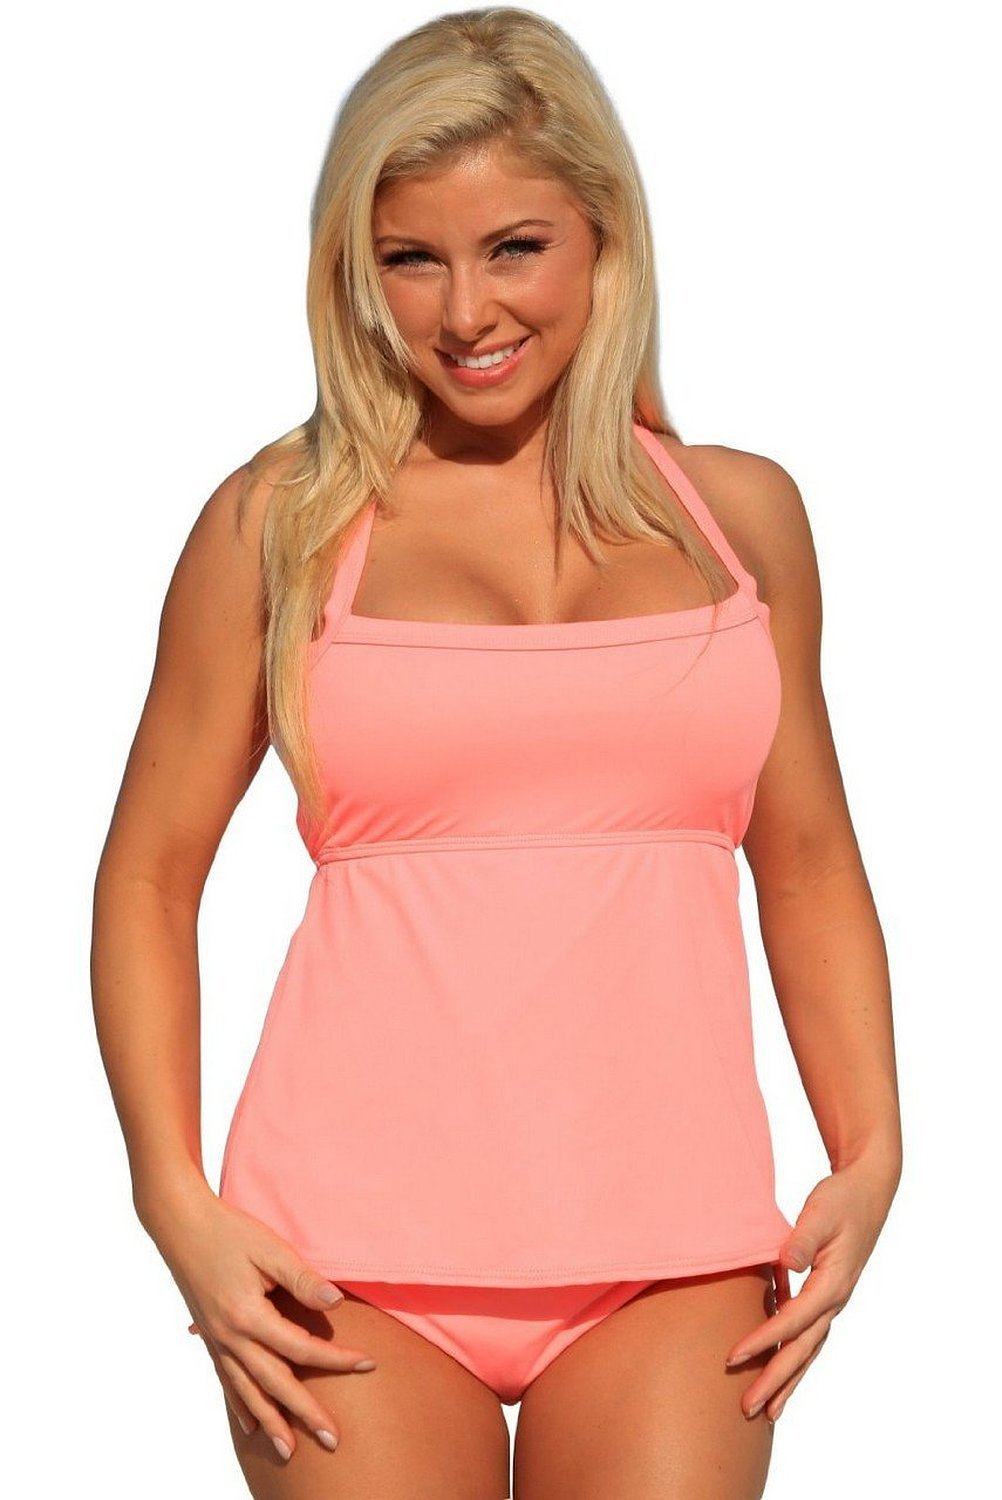 G208 Coral Full Figure Tankini Top: LL  Bottom: 1X swimsuits by UjENA